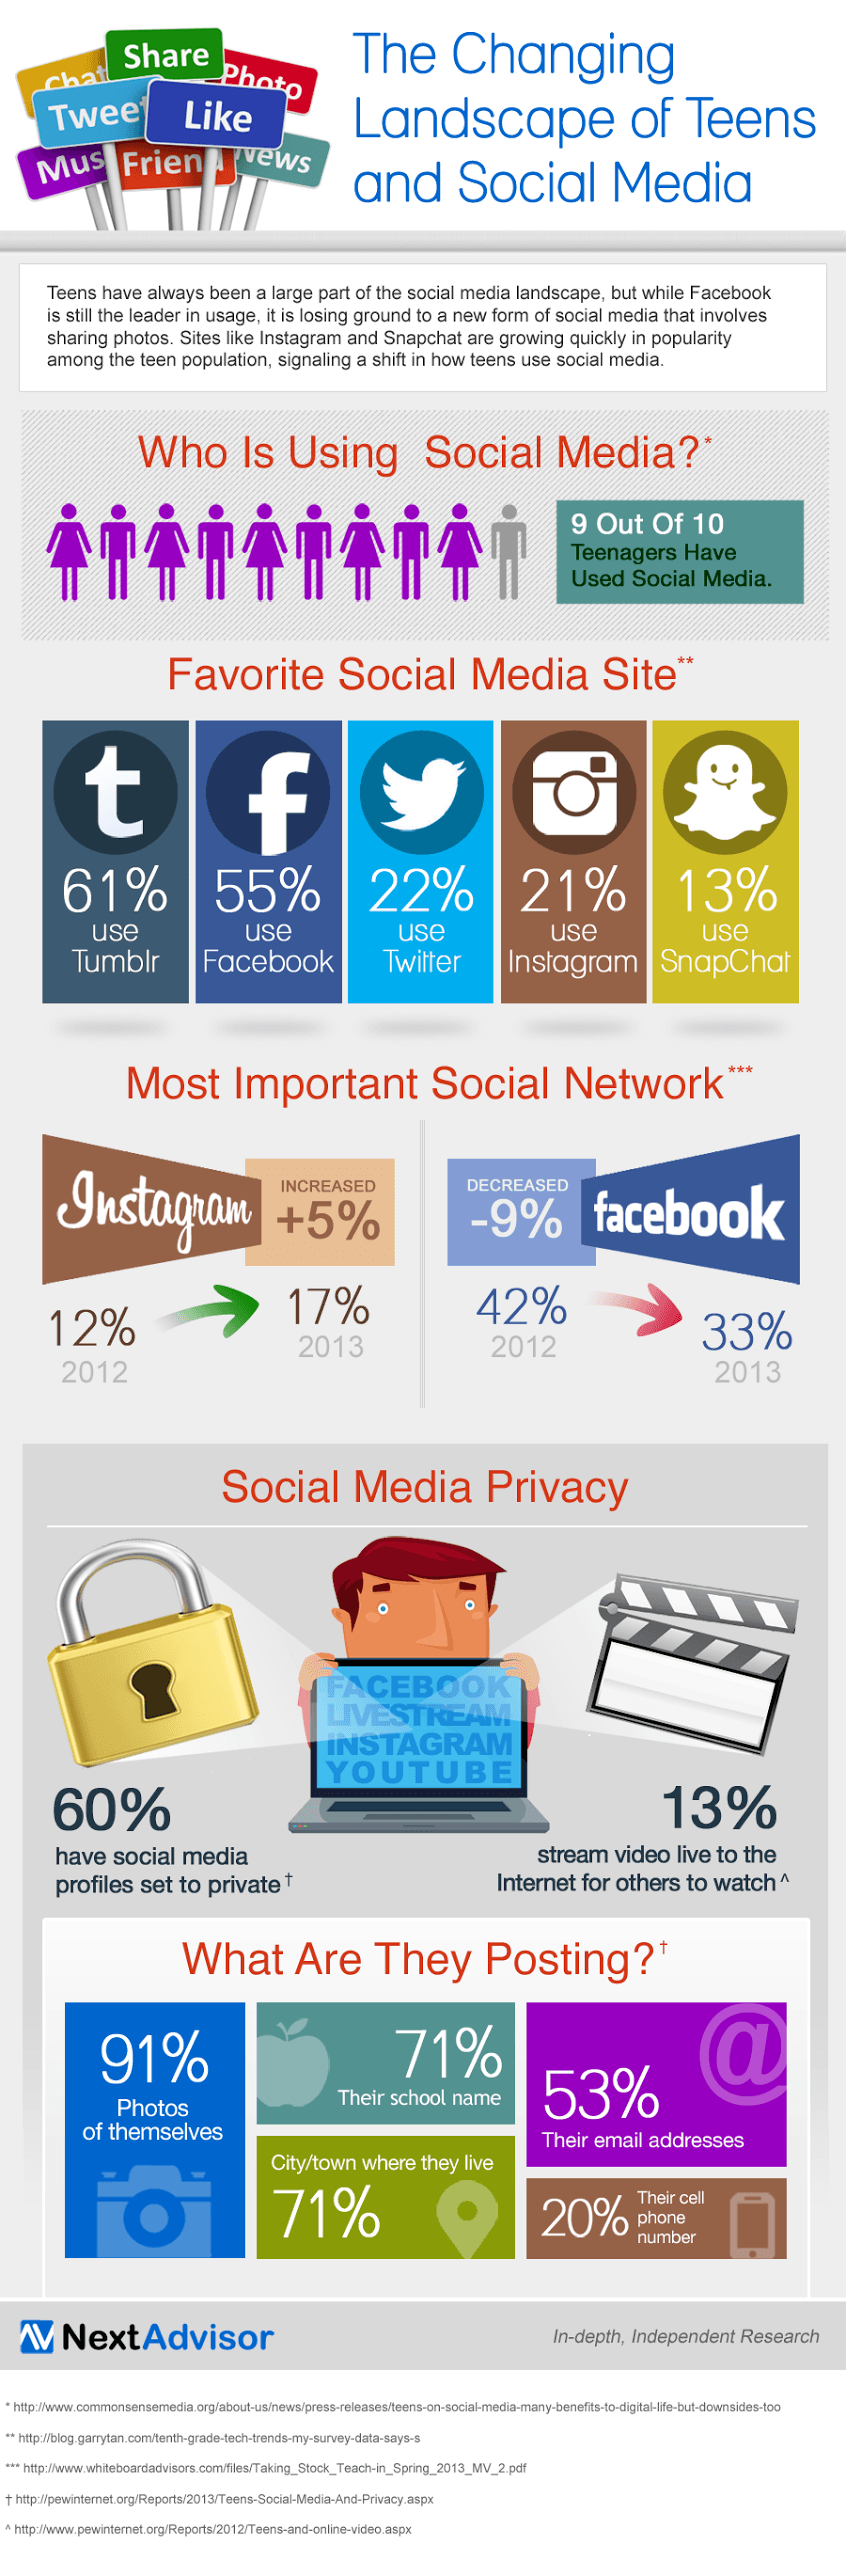 The-Changing-Landscape-of-Teens-and-Social-Media-Infographic